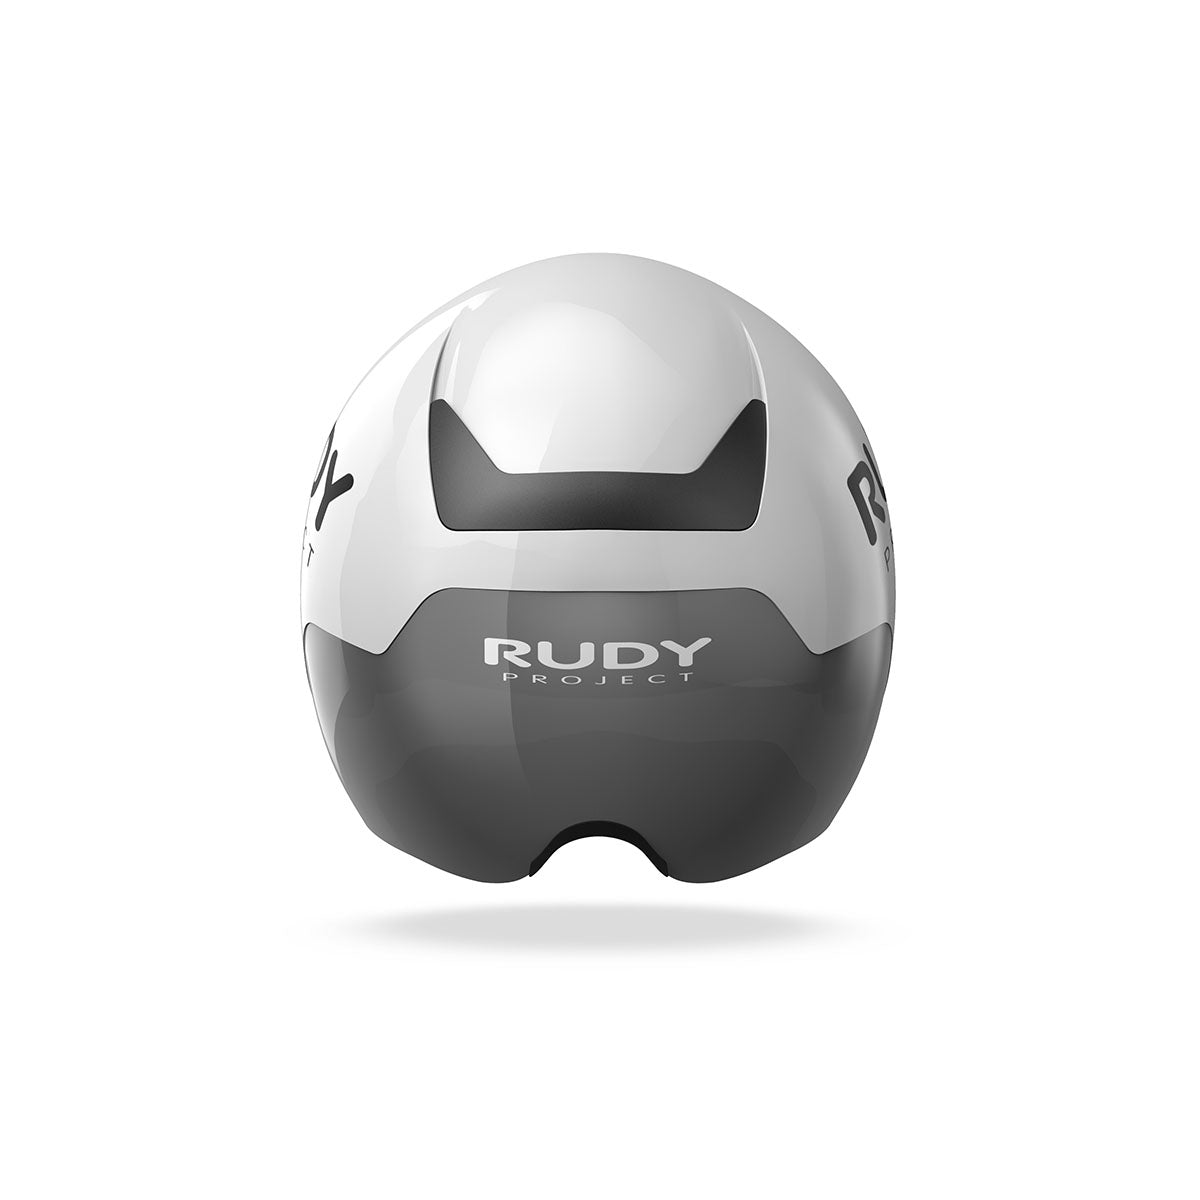 Rudy Project - The Wing - color: White - photo angle: Front WIth Visor Variant Hover Image